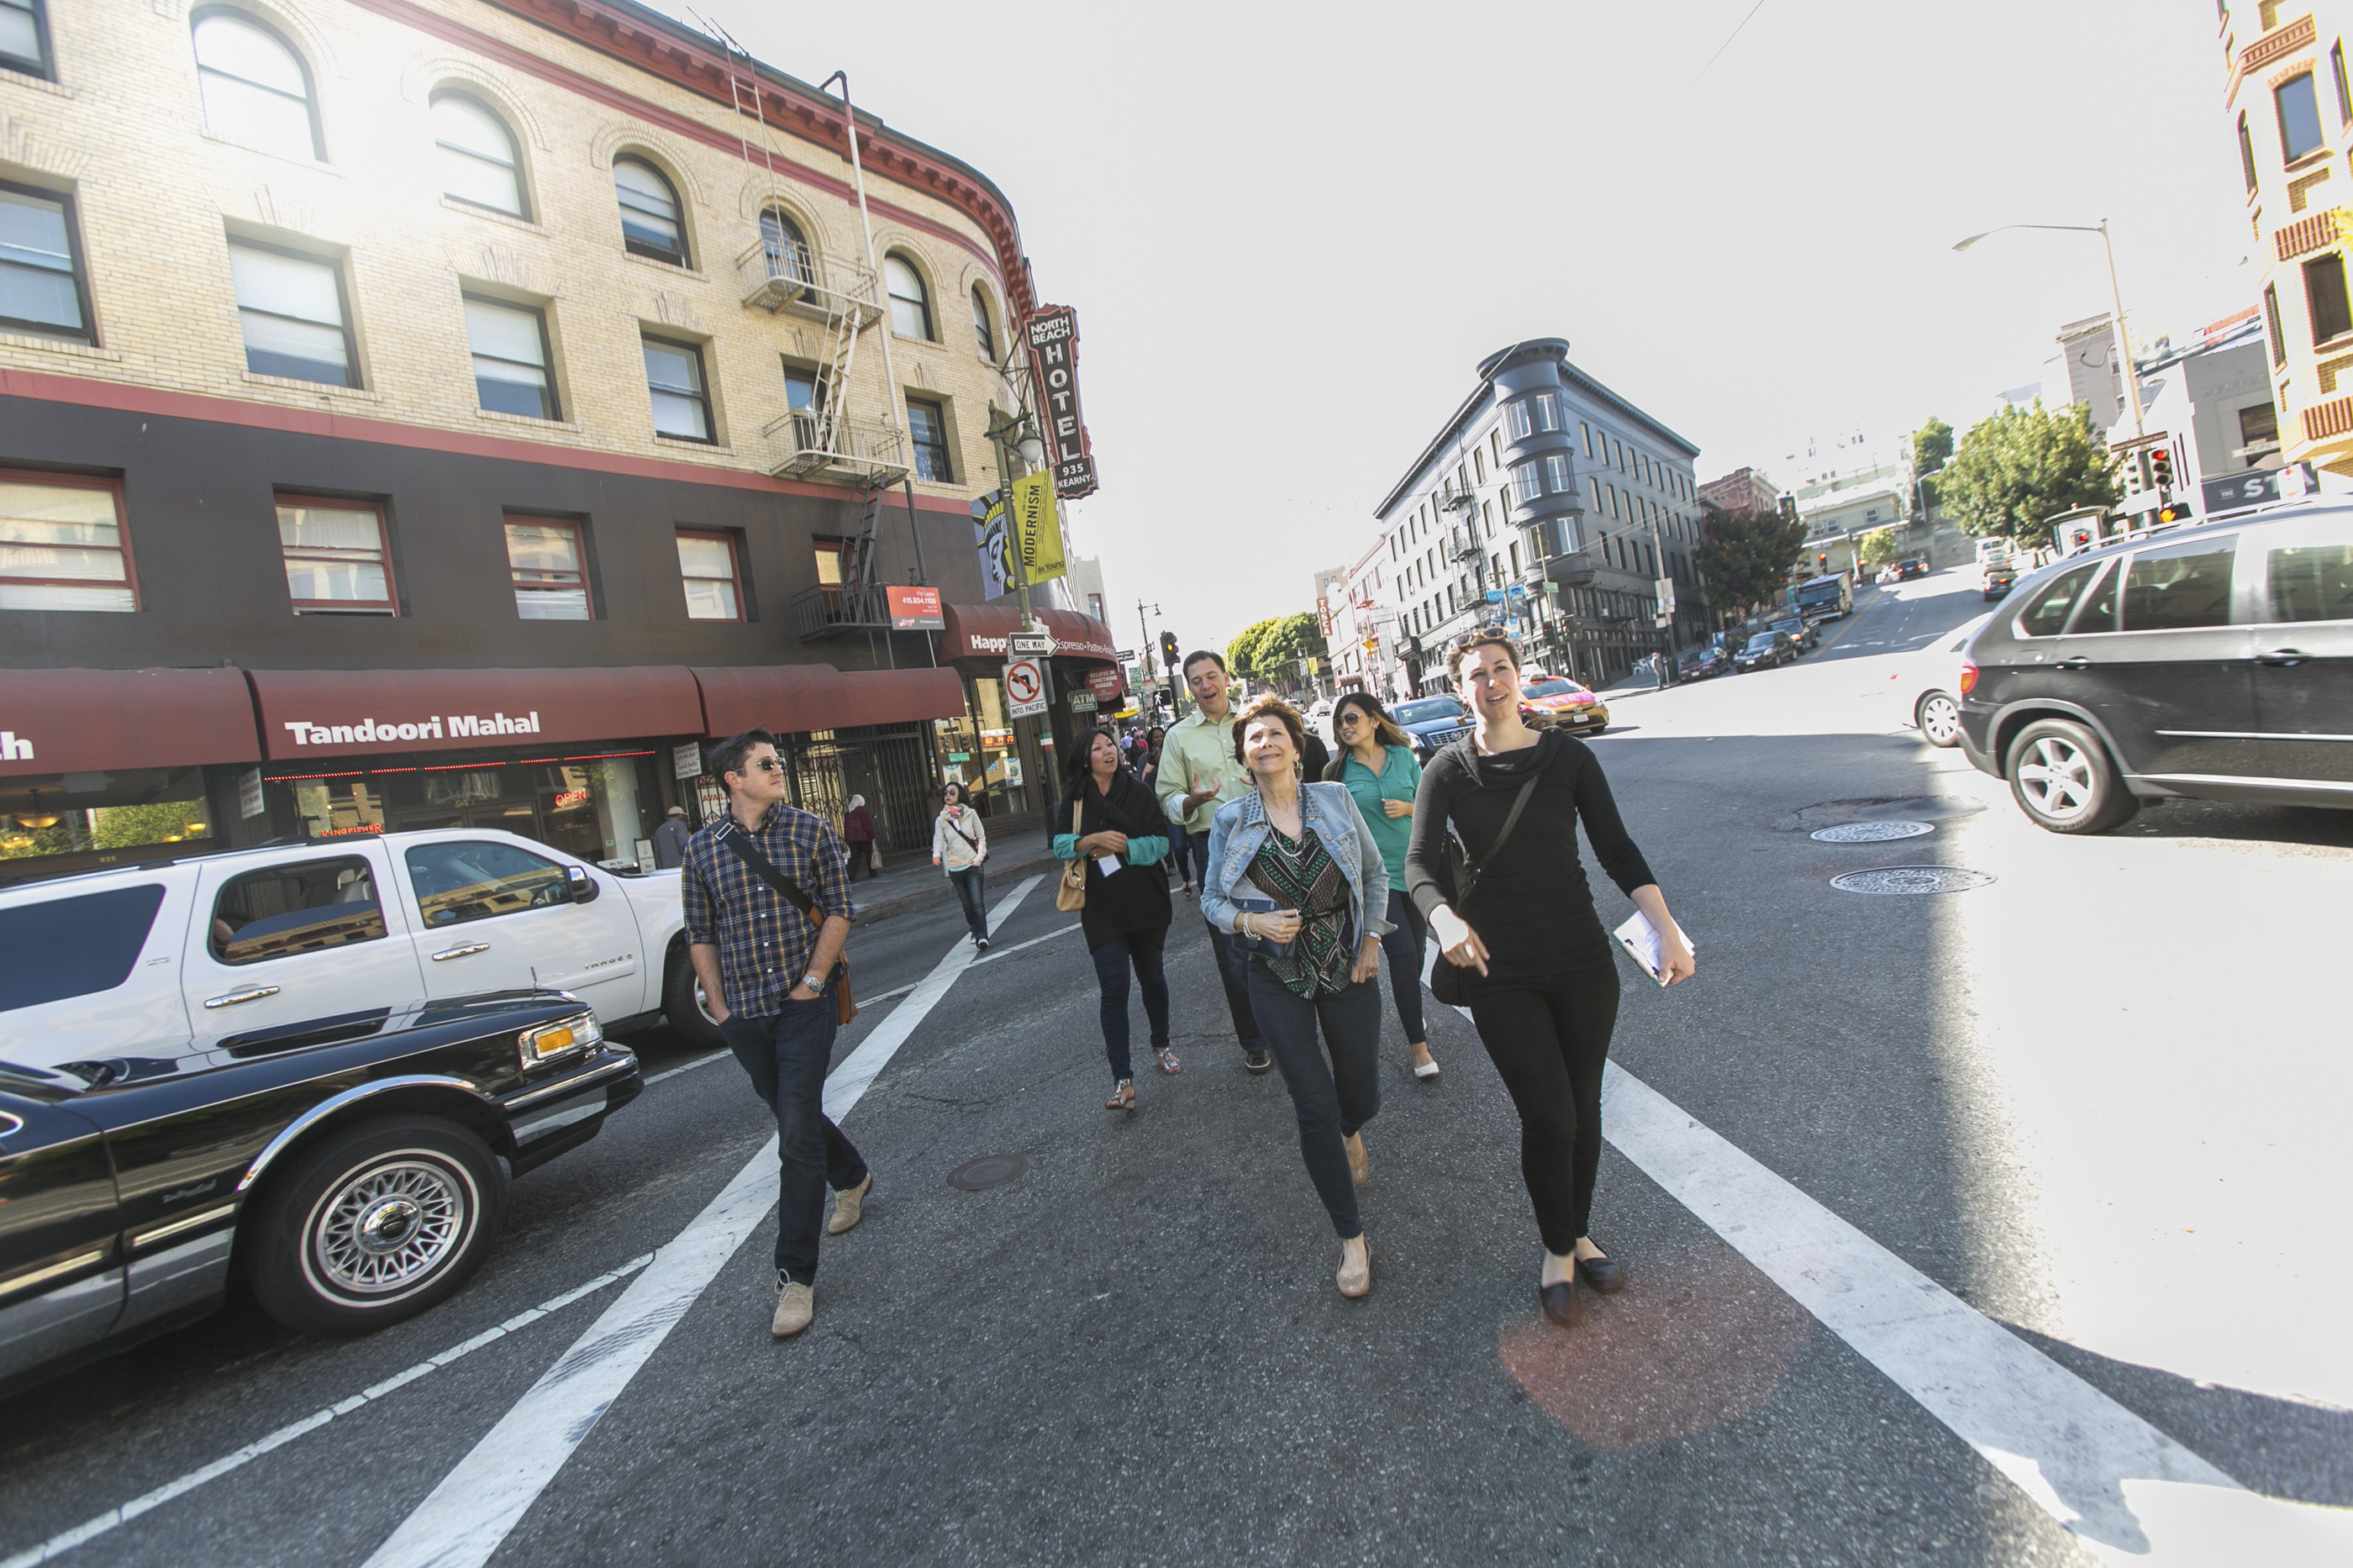 Tour guests walking on Street in North Beach San Francisco's Most Unique Corporate Team Building Experience